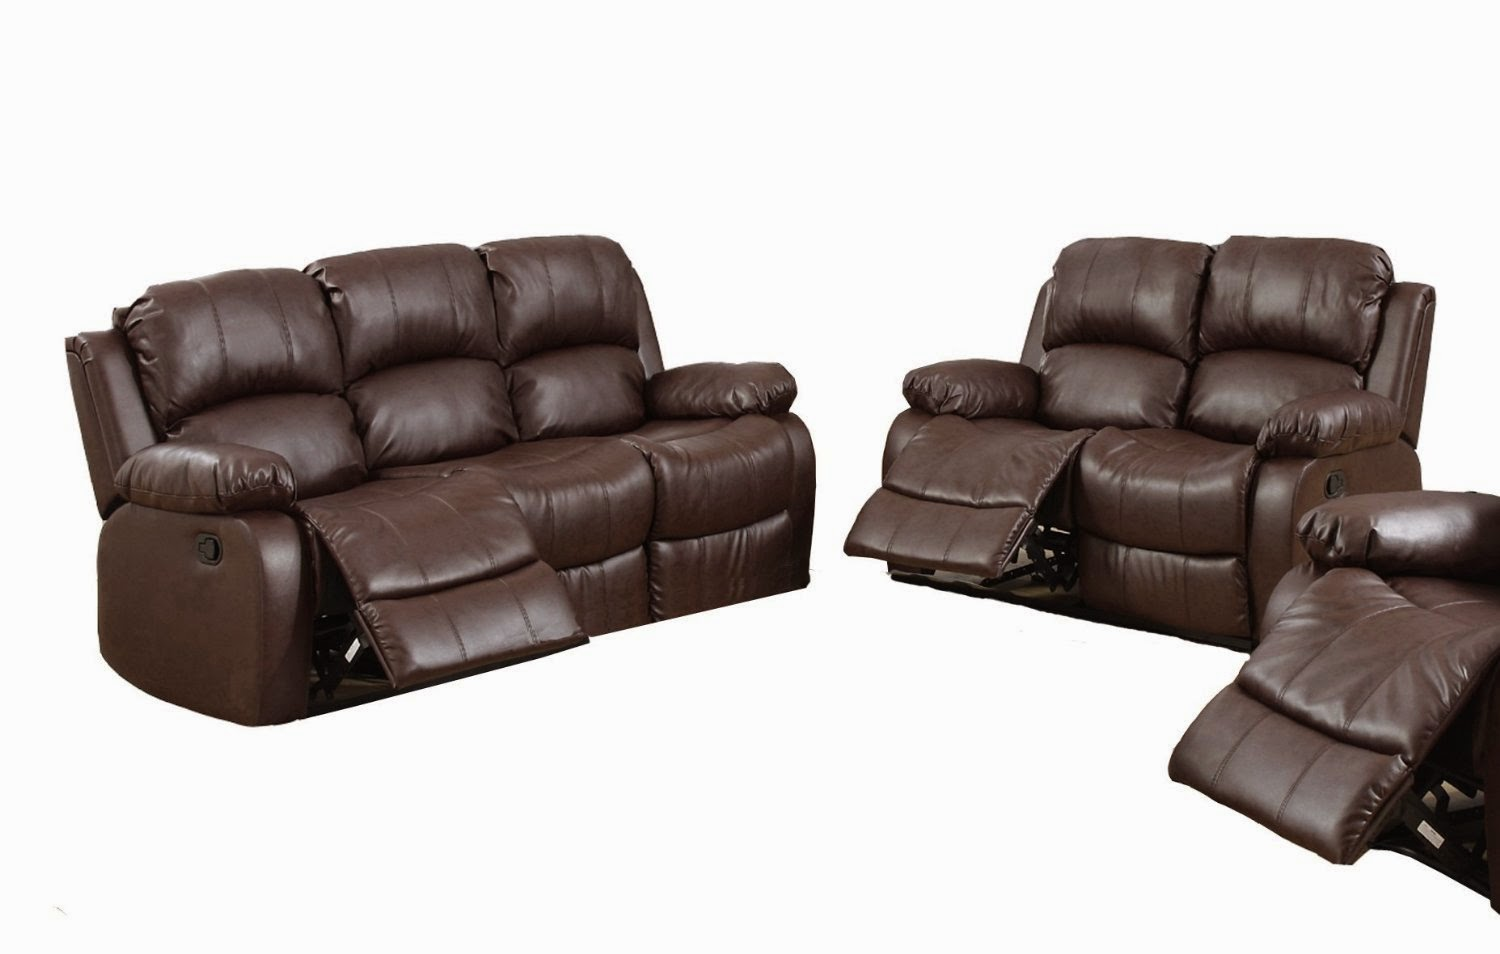 Cheap reclining sofa and loveseat sets april 2015 Leather sofa and loveseat recliner